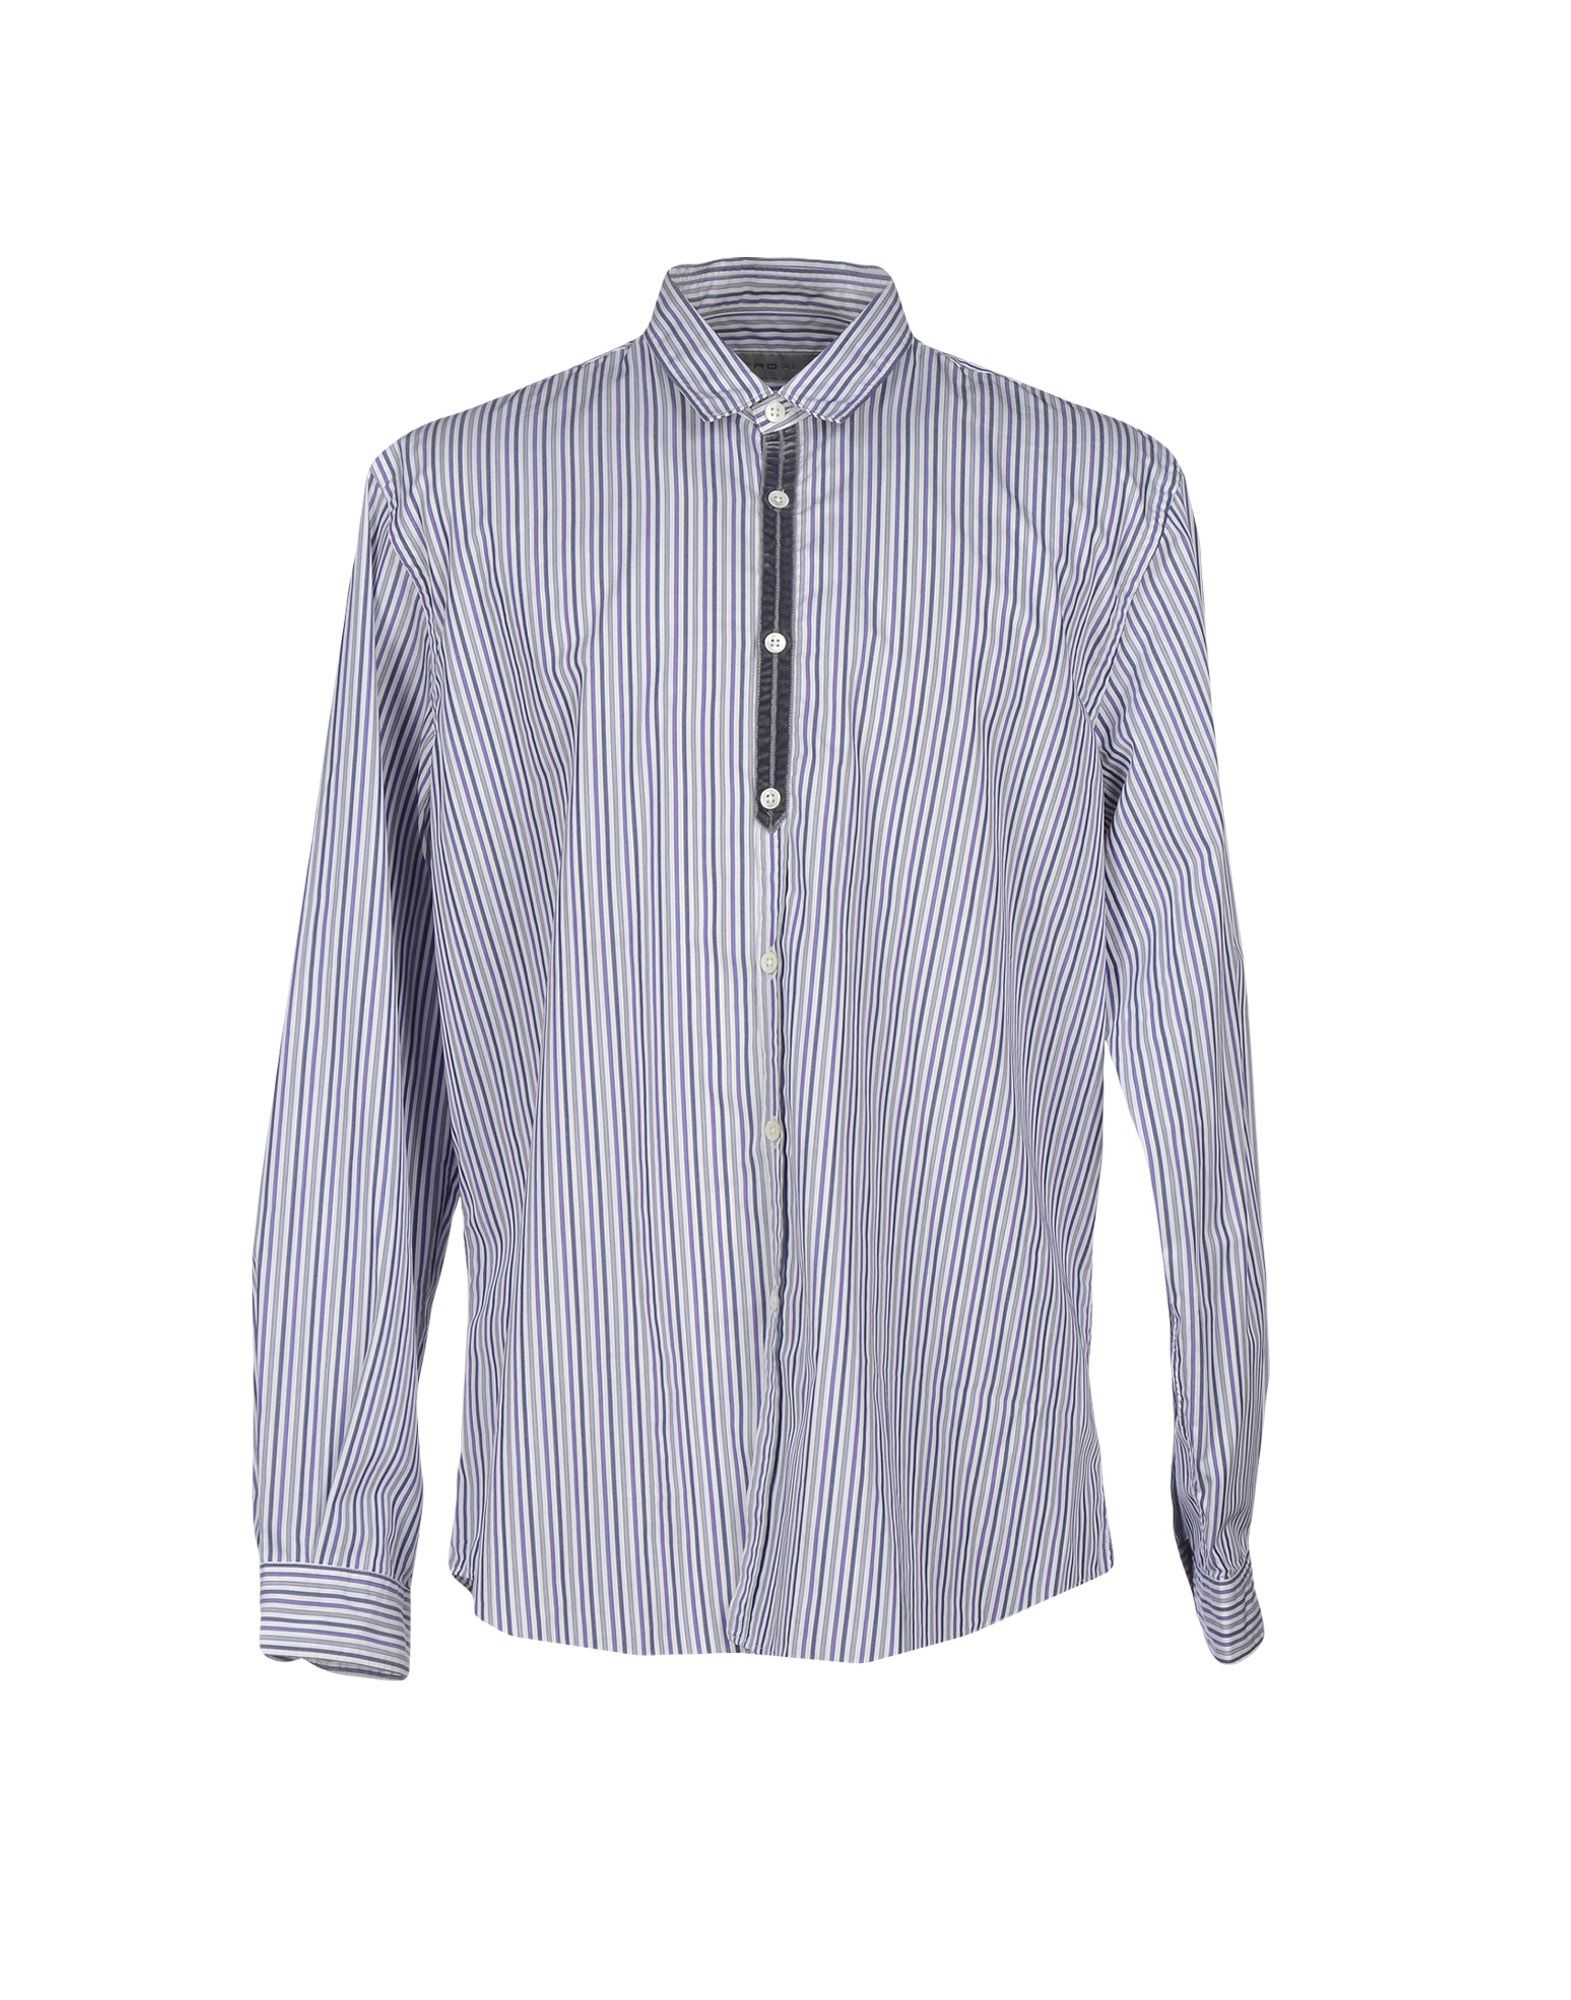 Lyst etro shirt in gray for men for Etro men s shirts